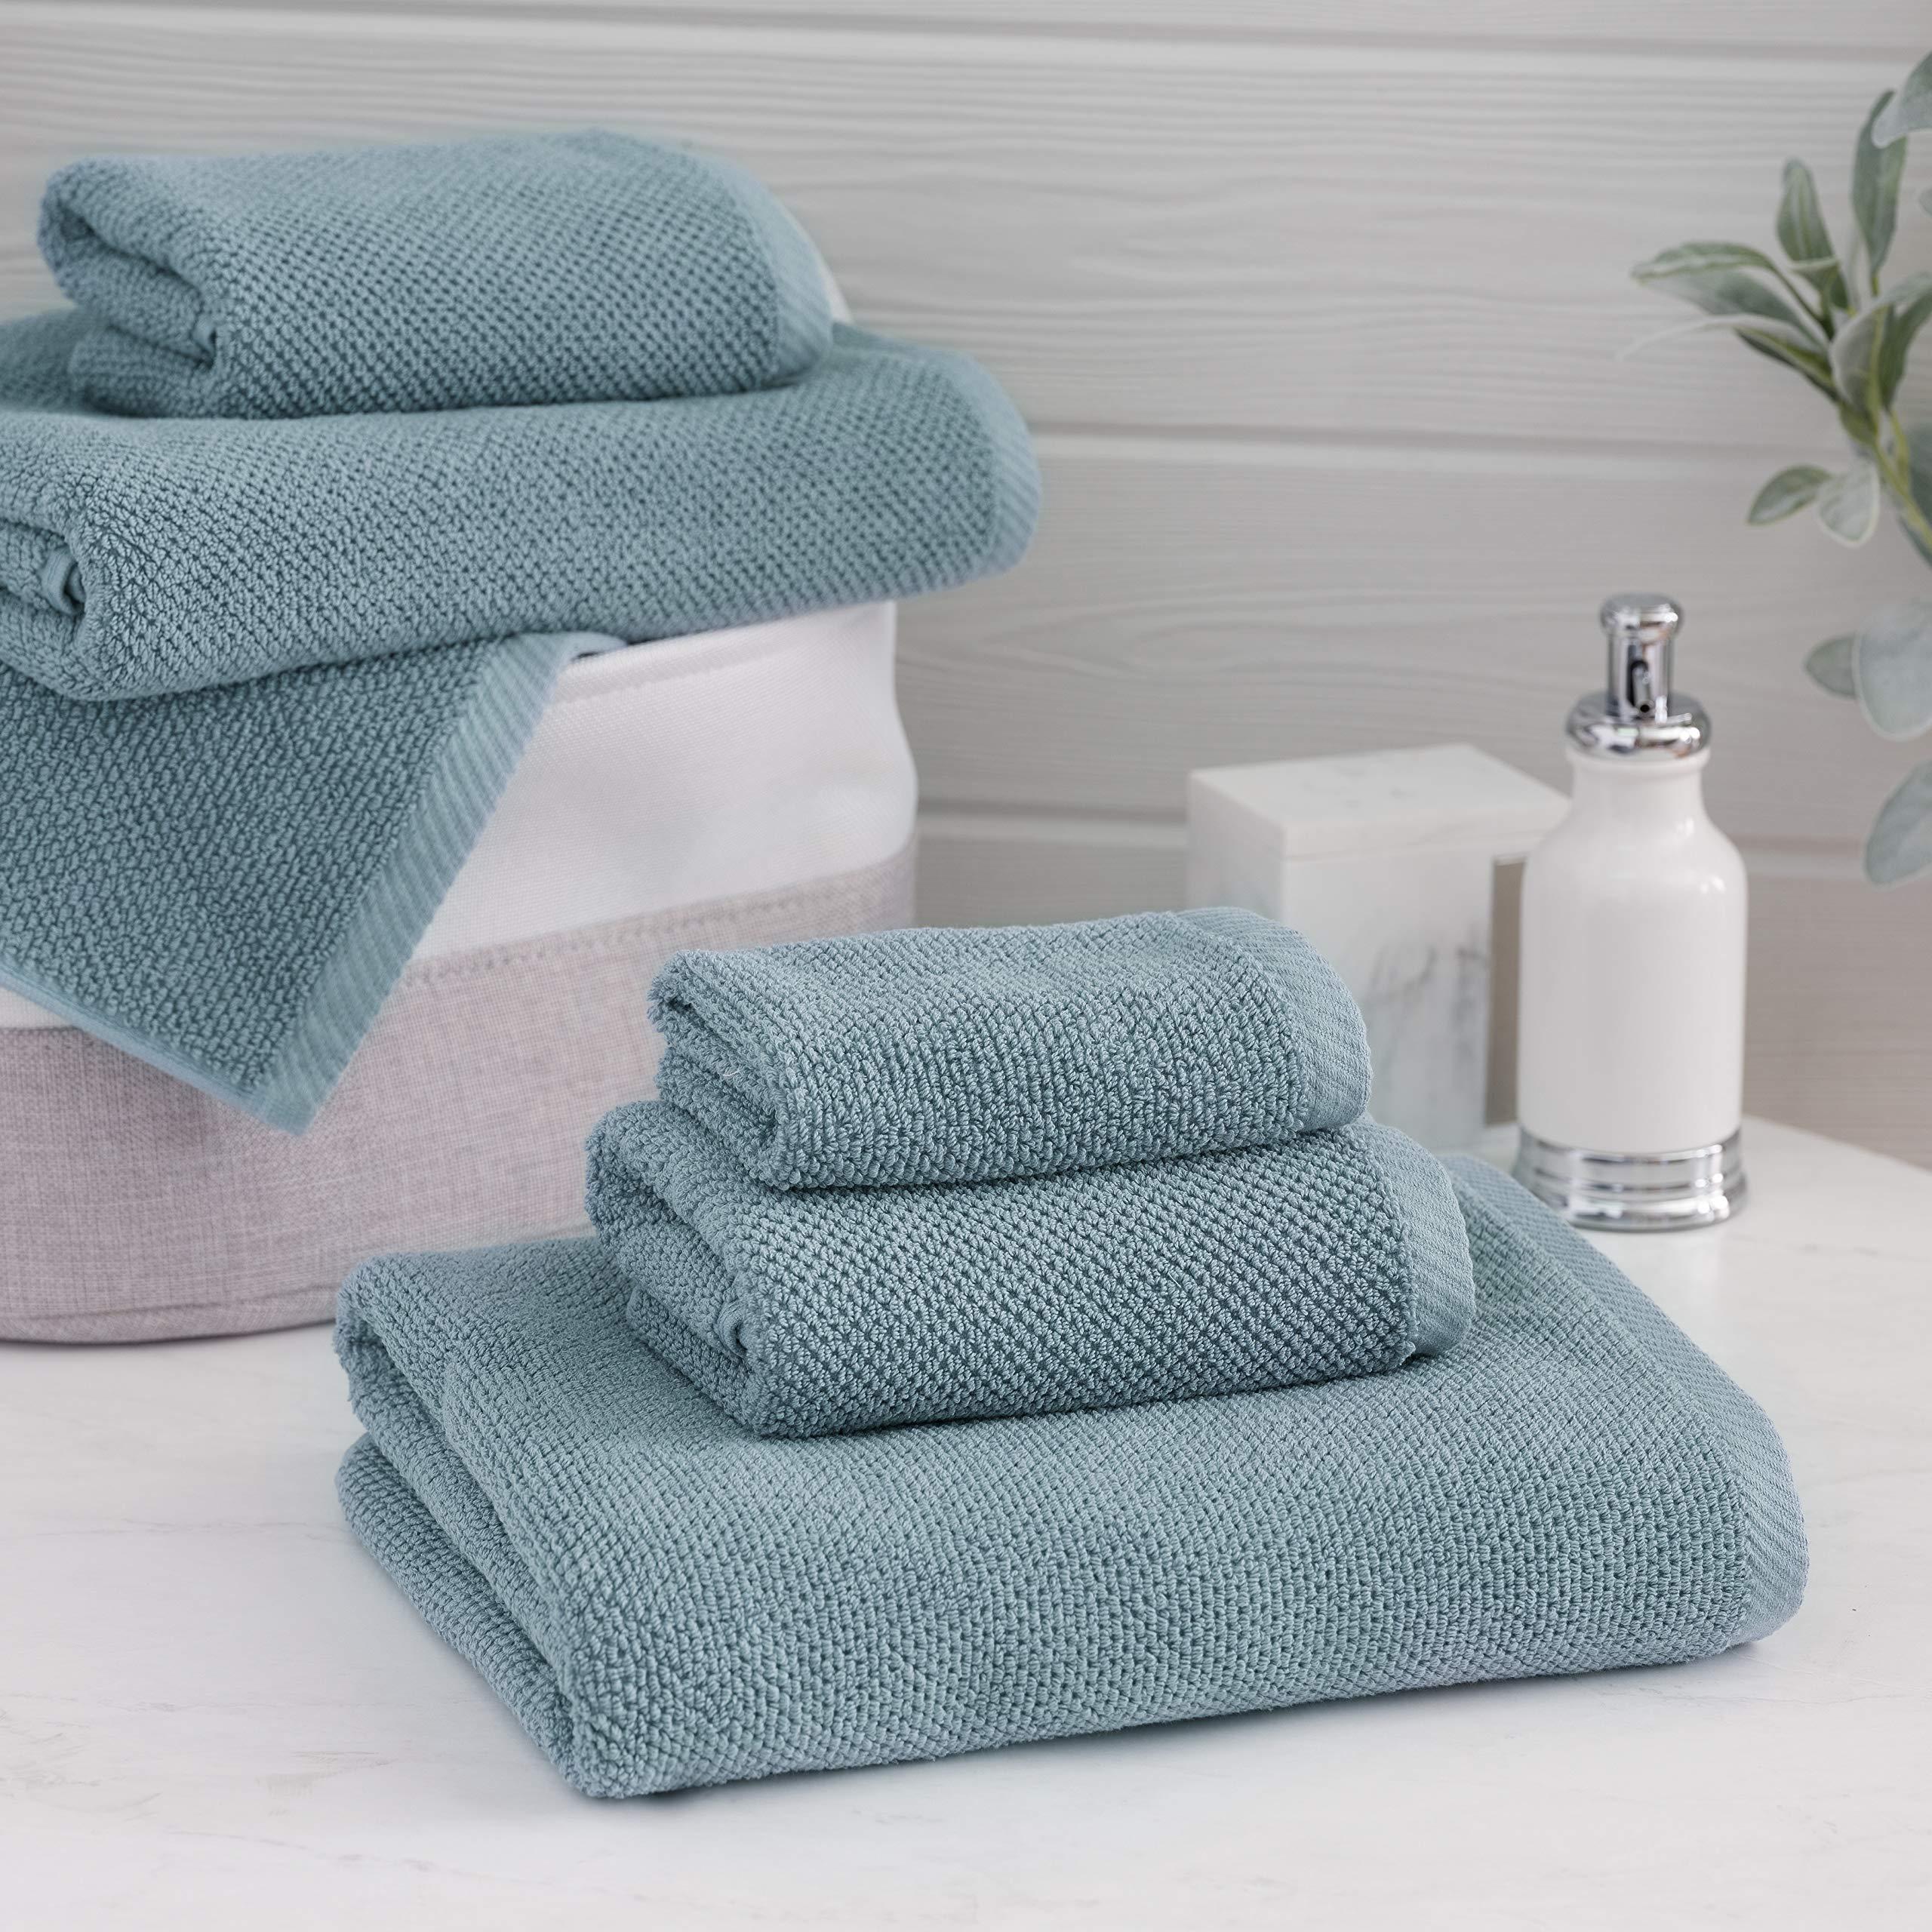 CDM product Welhome Franklin 100% Cotton Textured Towel (Dusty Blue) - Set of 6 - Highly Absorbent - Combed Cotton - Durable - Low Lint - 600 GSM - Machine Washable : 2 Bath Towels - 2 Hand Towels - 2 Wash Towels big image